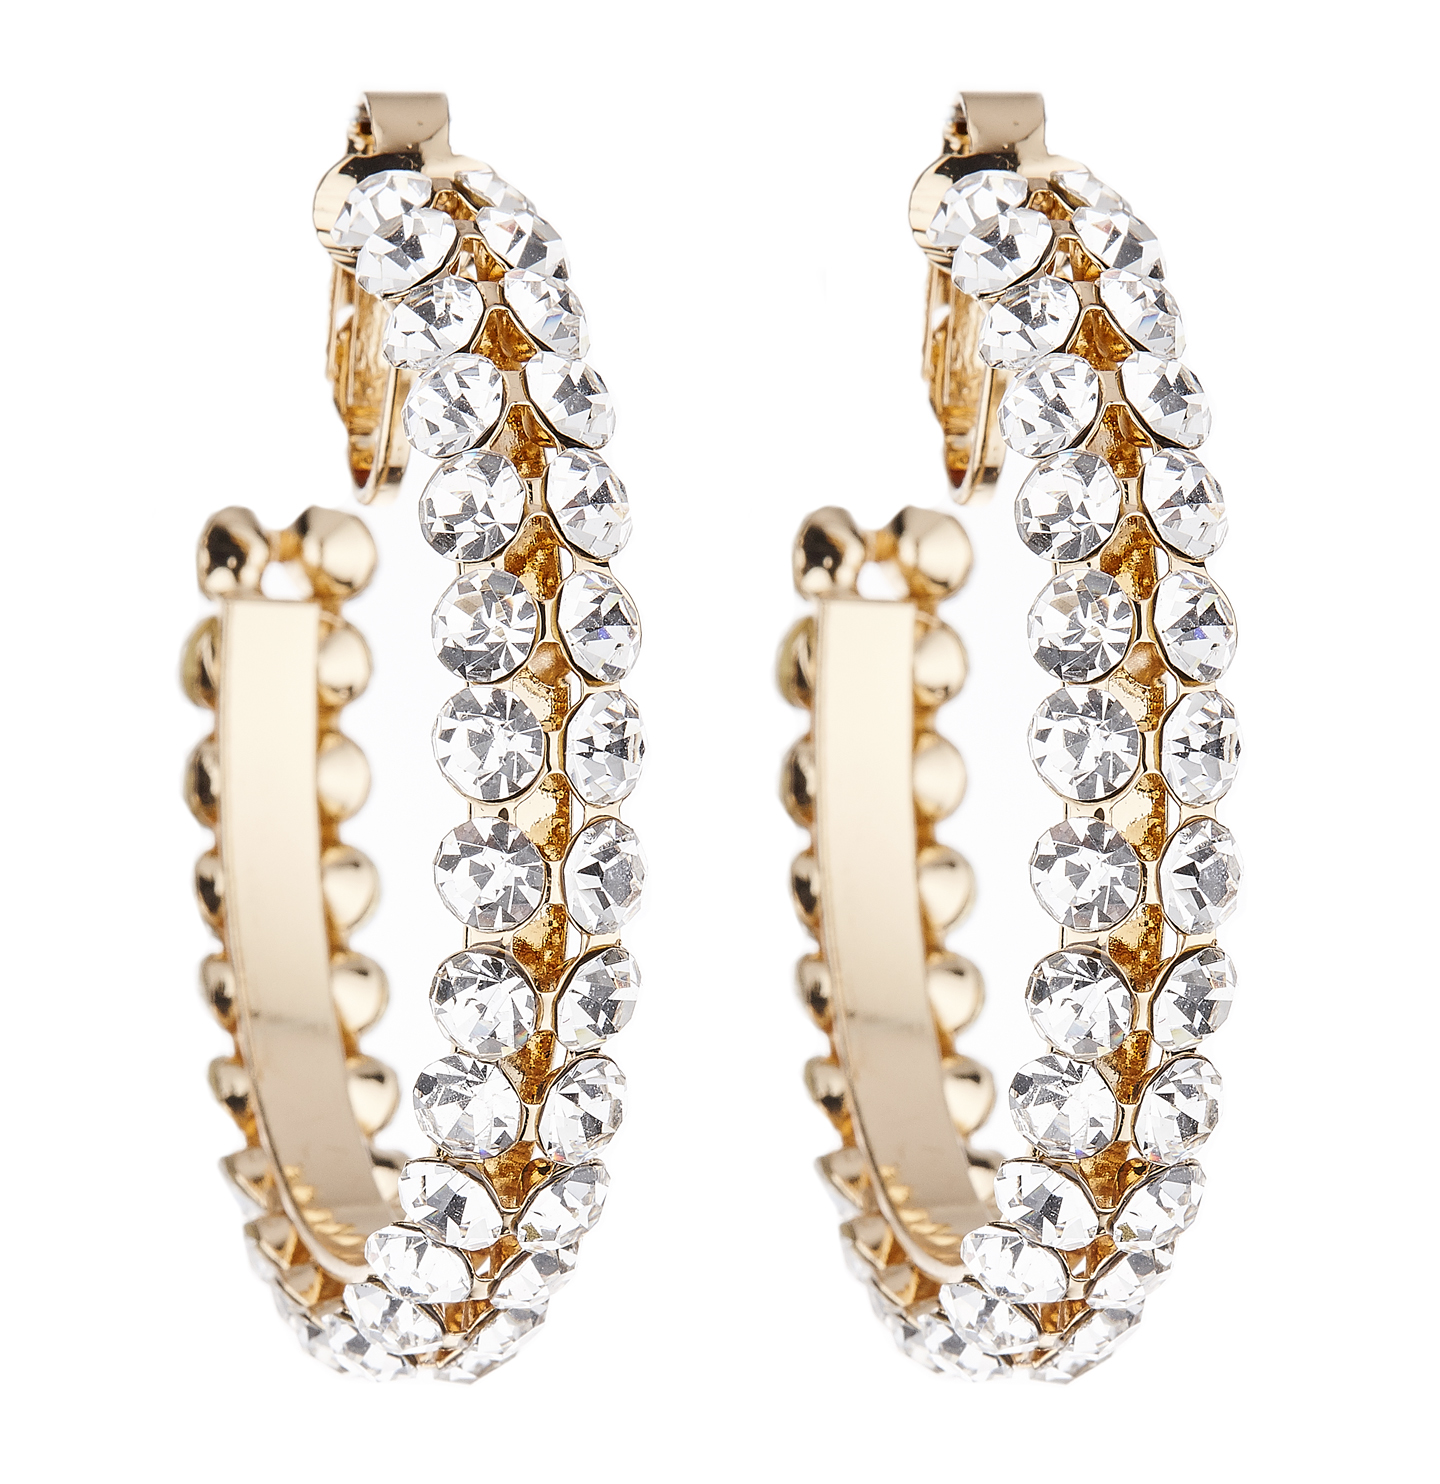 Clip On Earrings - Bevin - gold hoops with clear crystals